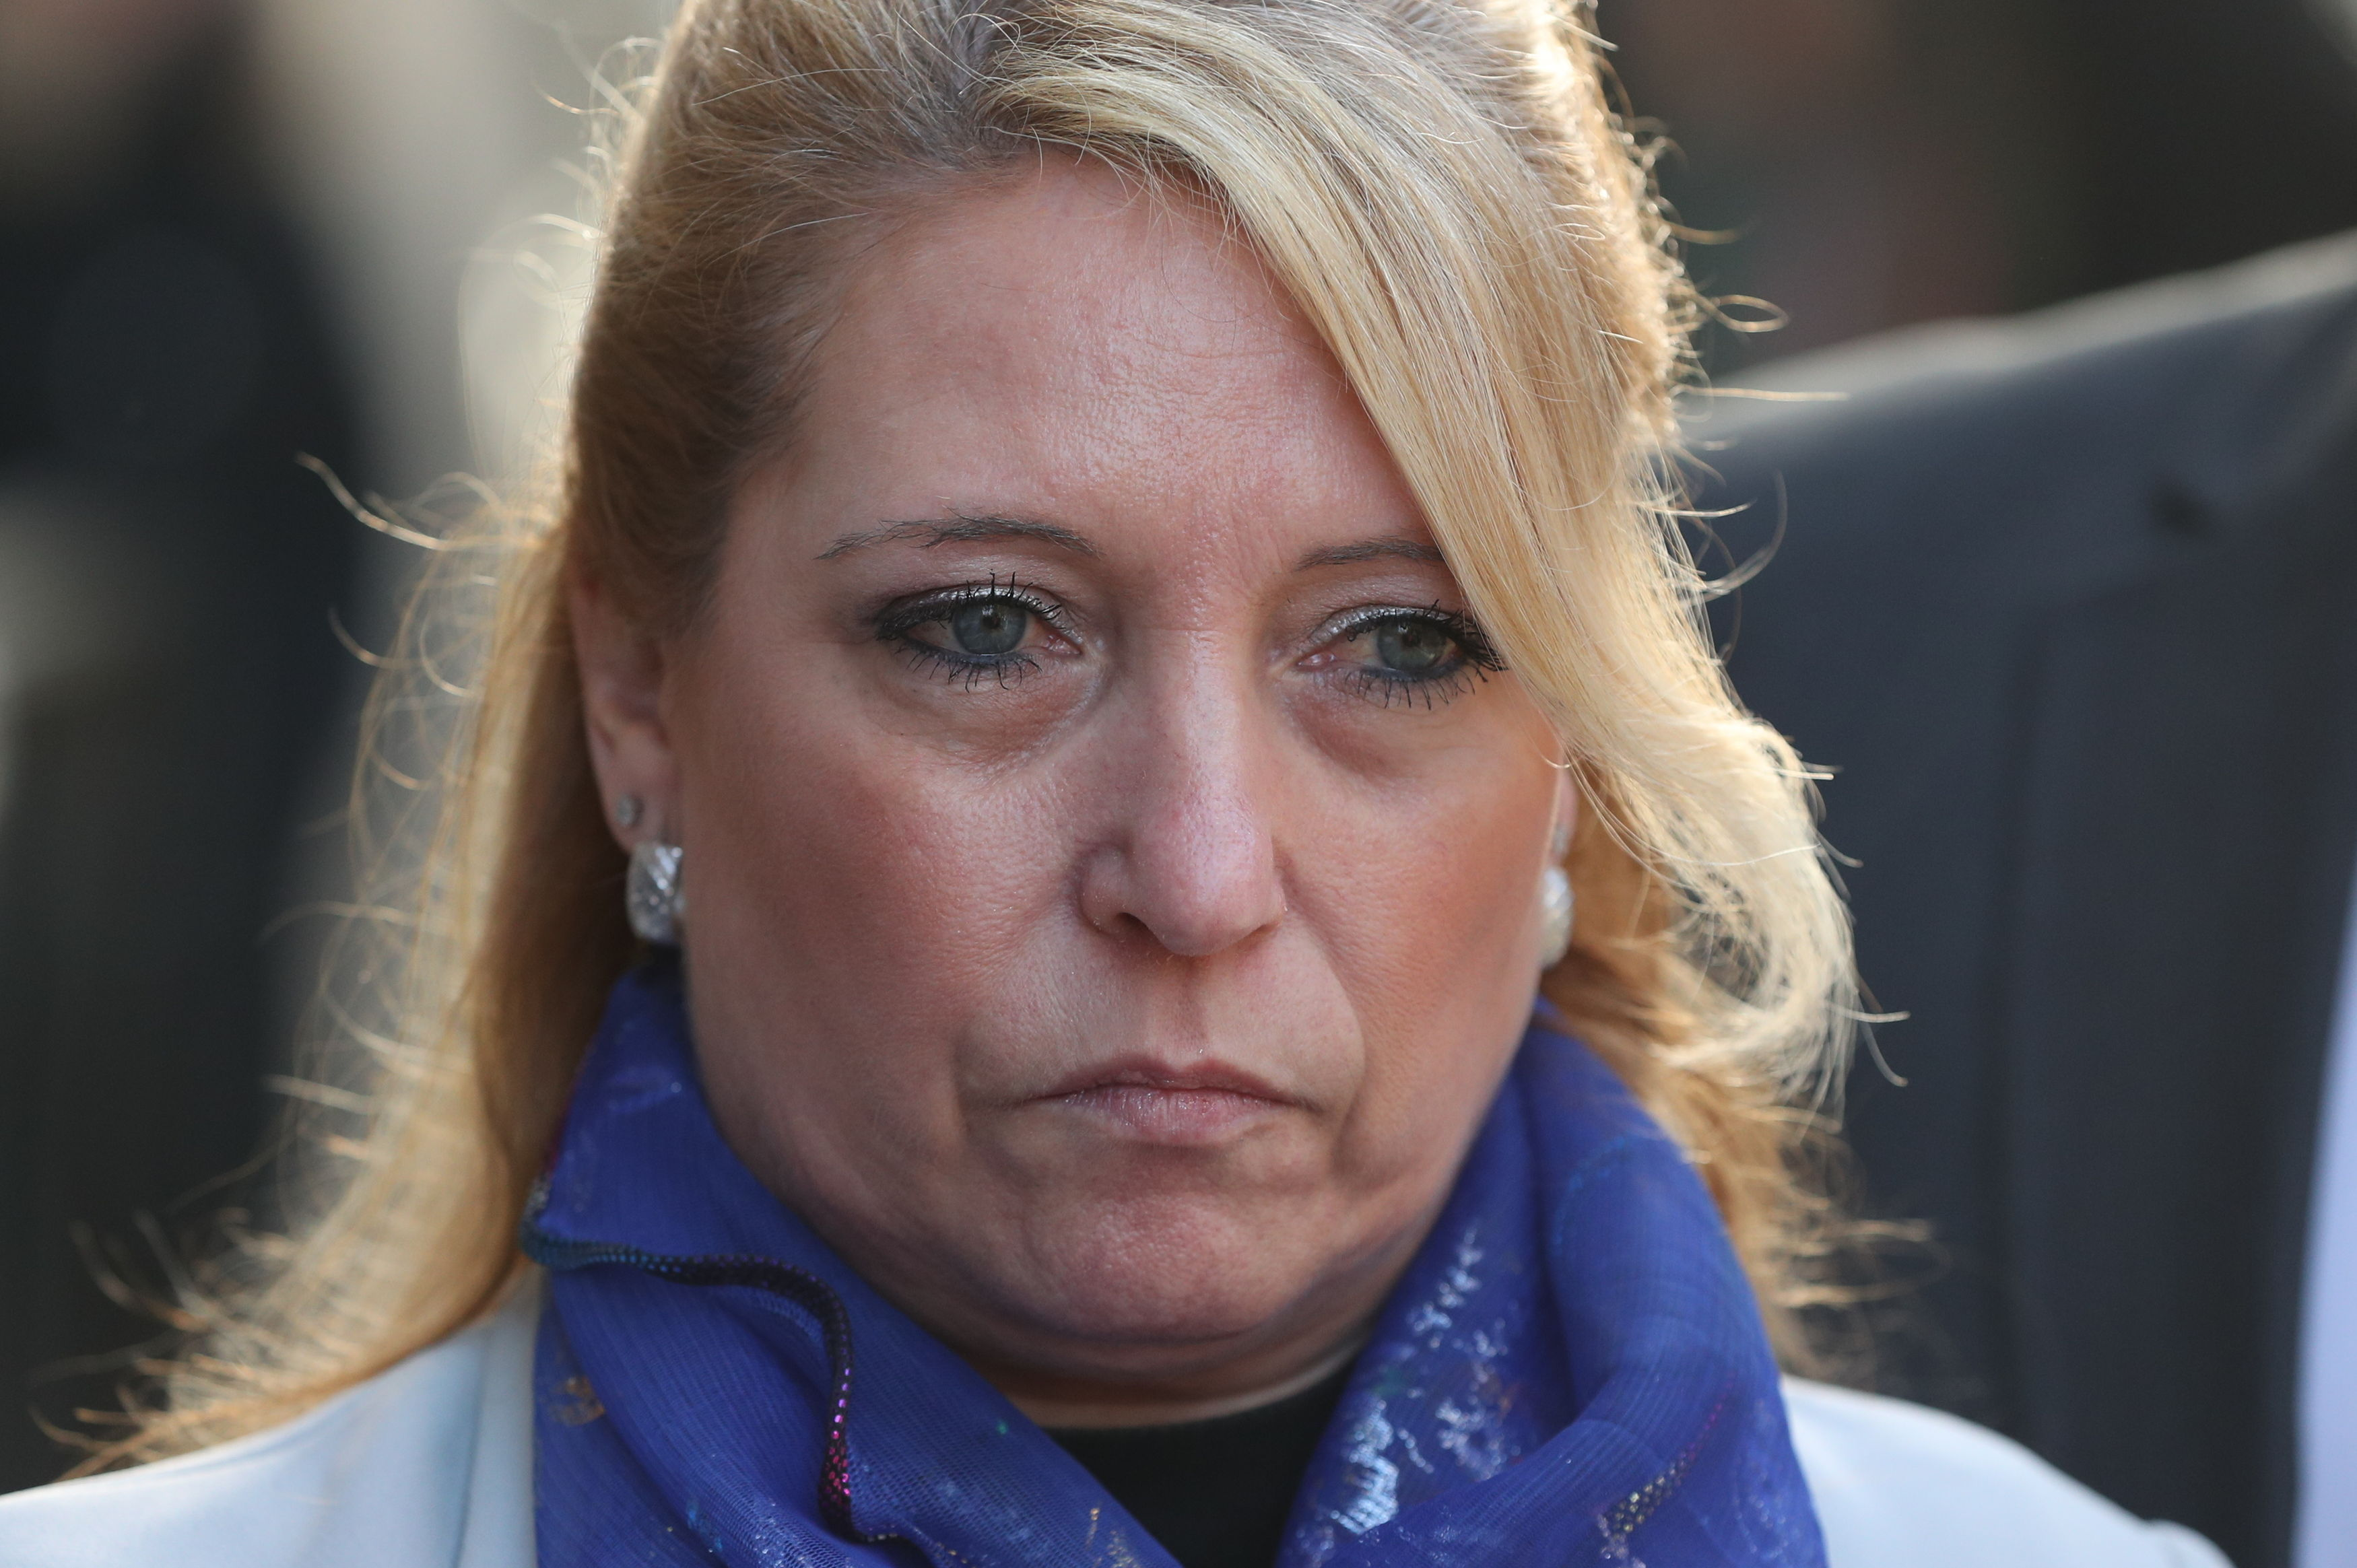 James Bulger's mum Denise Fergus outside the Old Bailey. Credit: PA